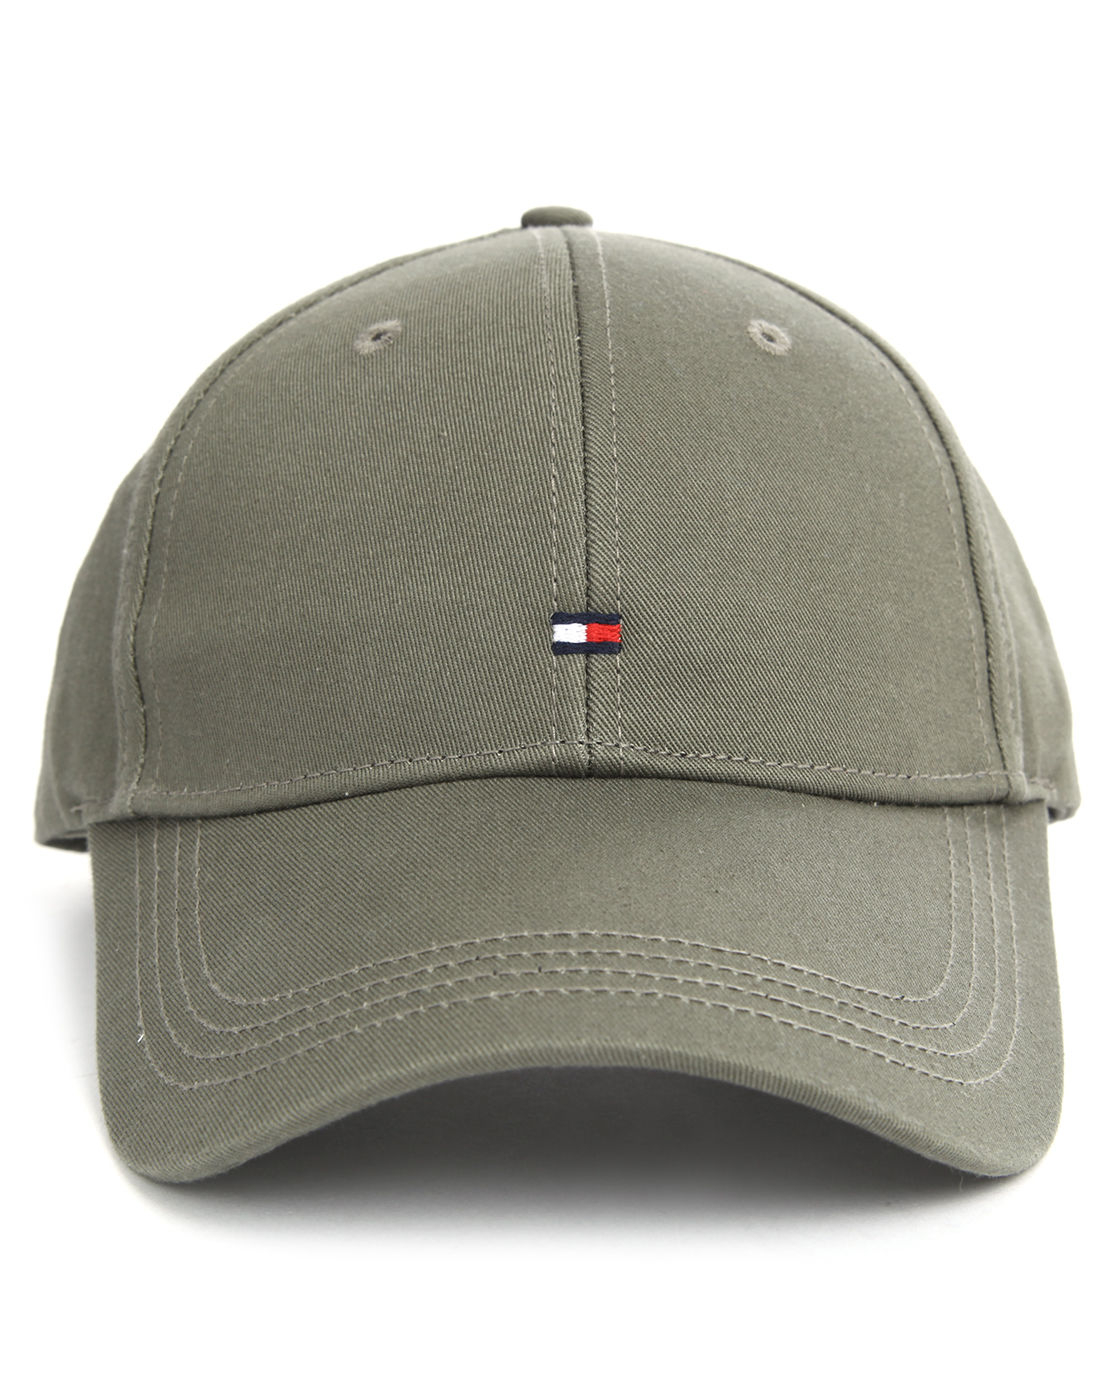 tommy hilfiger khaki classic cap in natural for men khaki. Black Bedroom Furniture Sets. Home Design Ideas